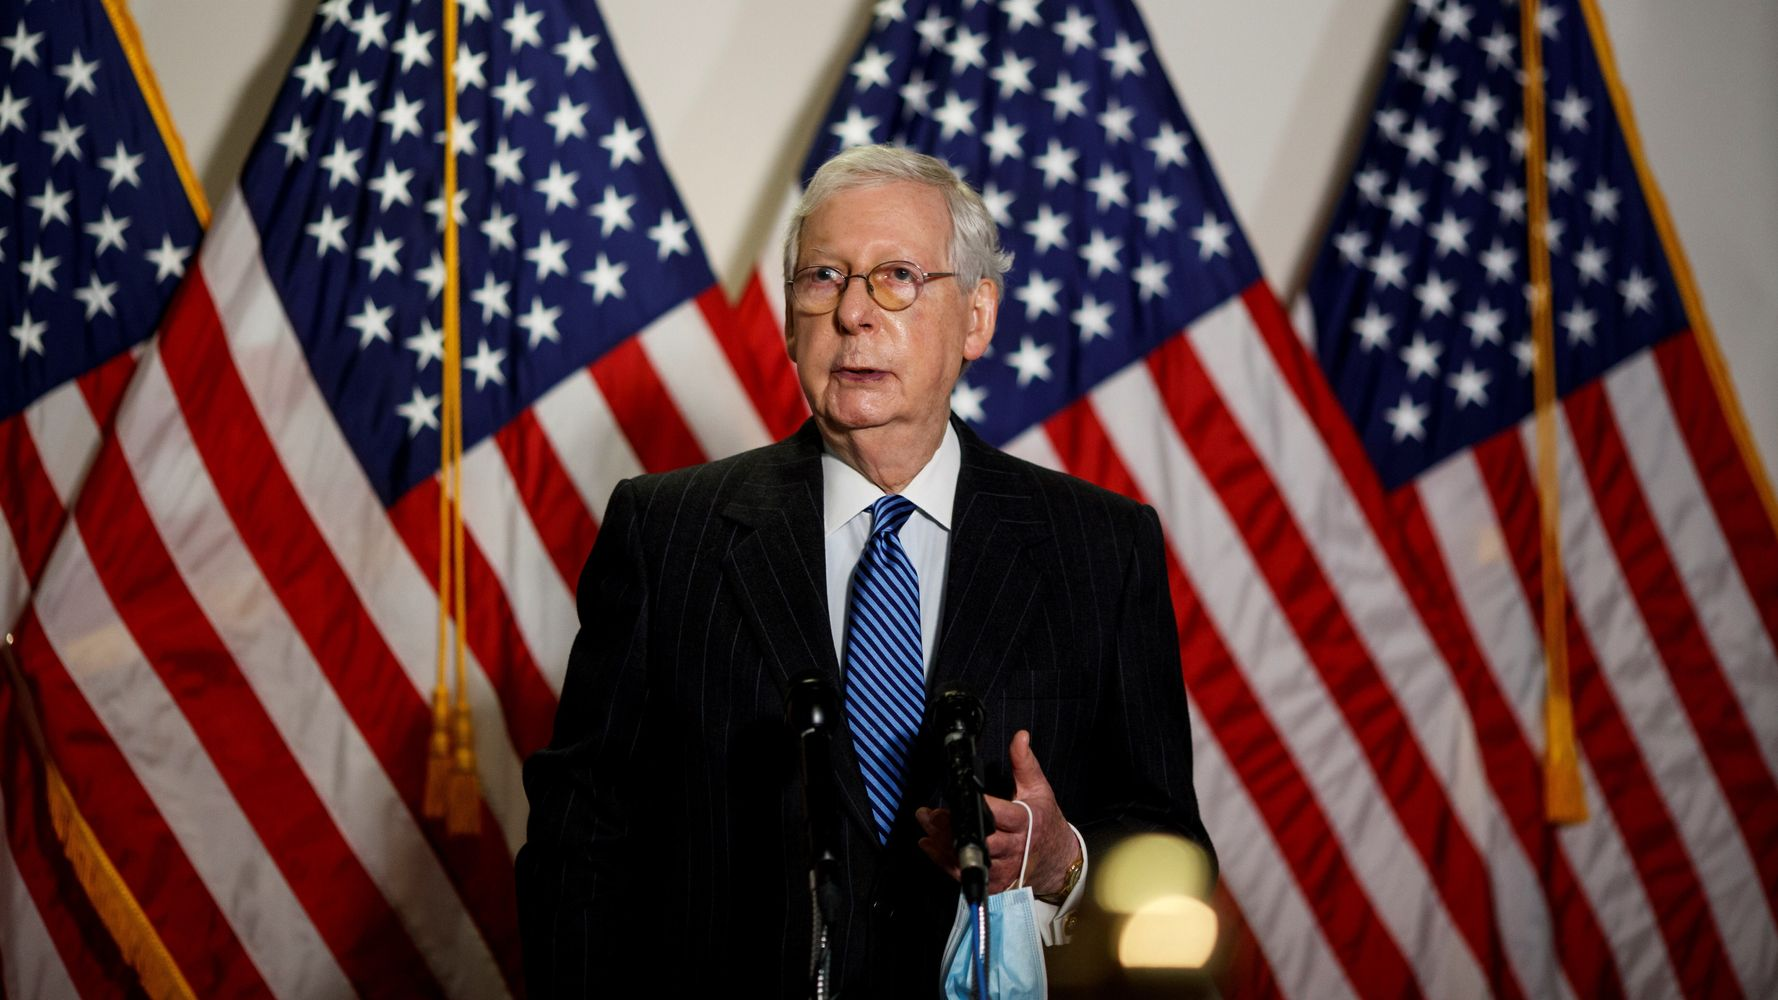 McConnell-Linked Super PAC Fundraising Alarms Senate Democrats